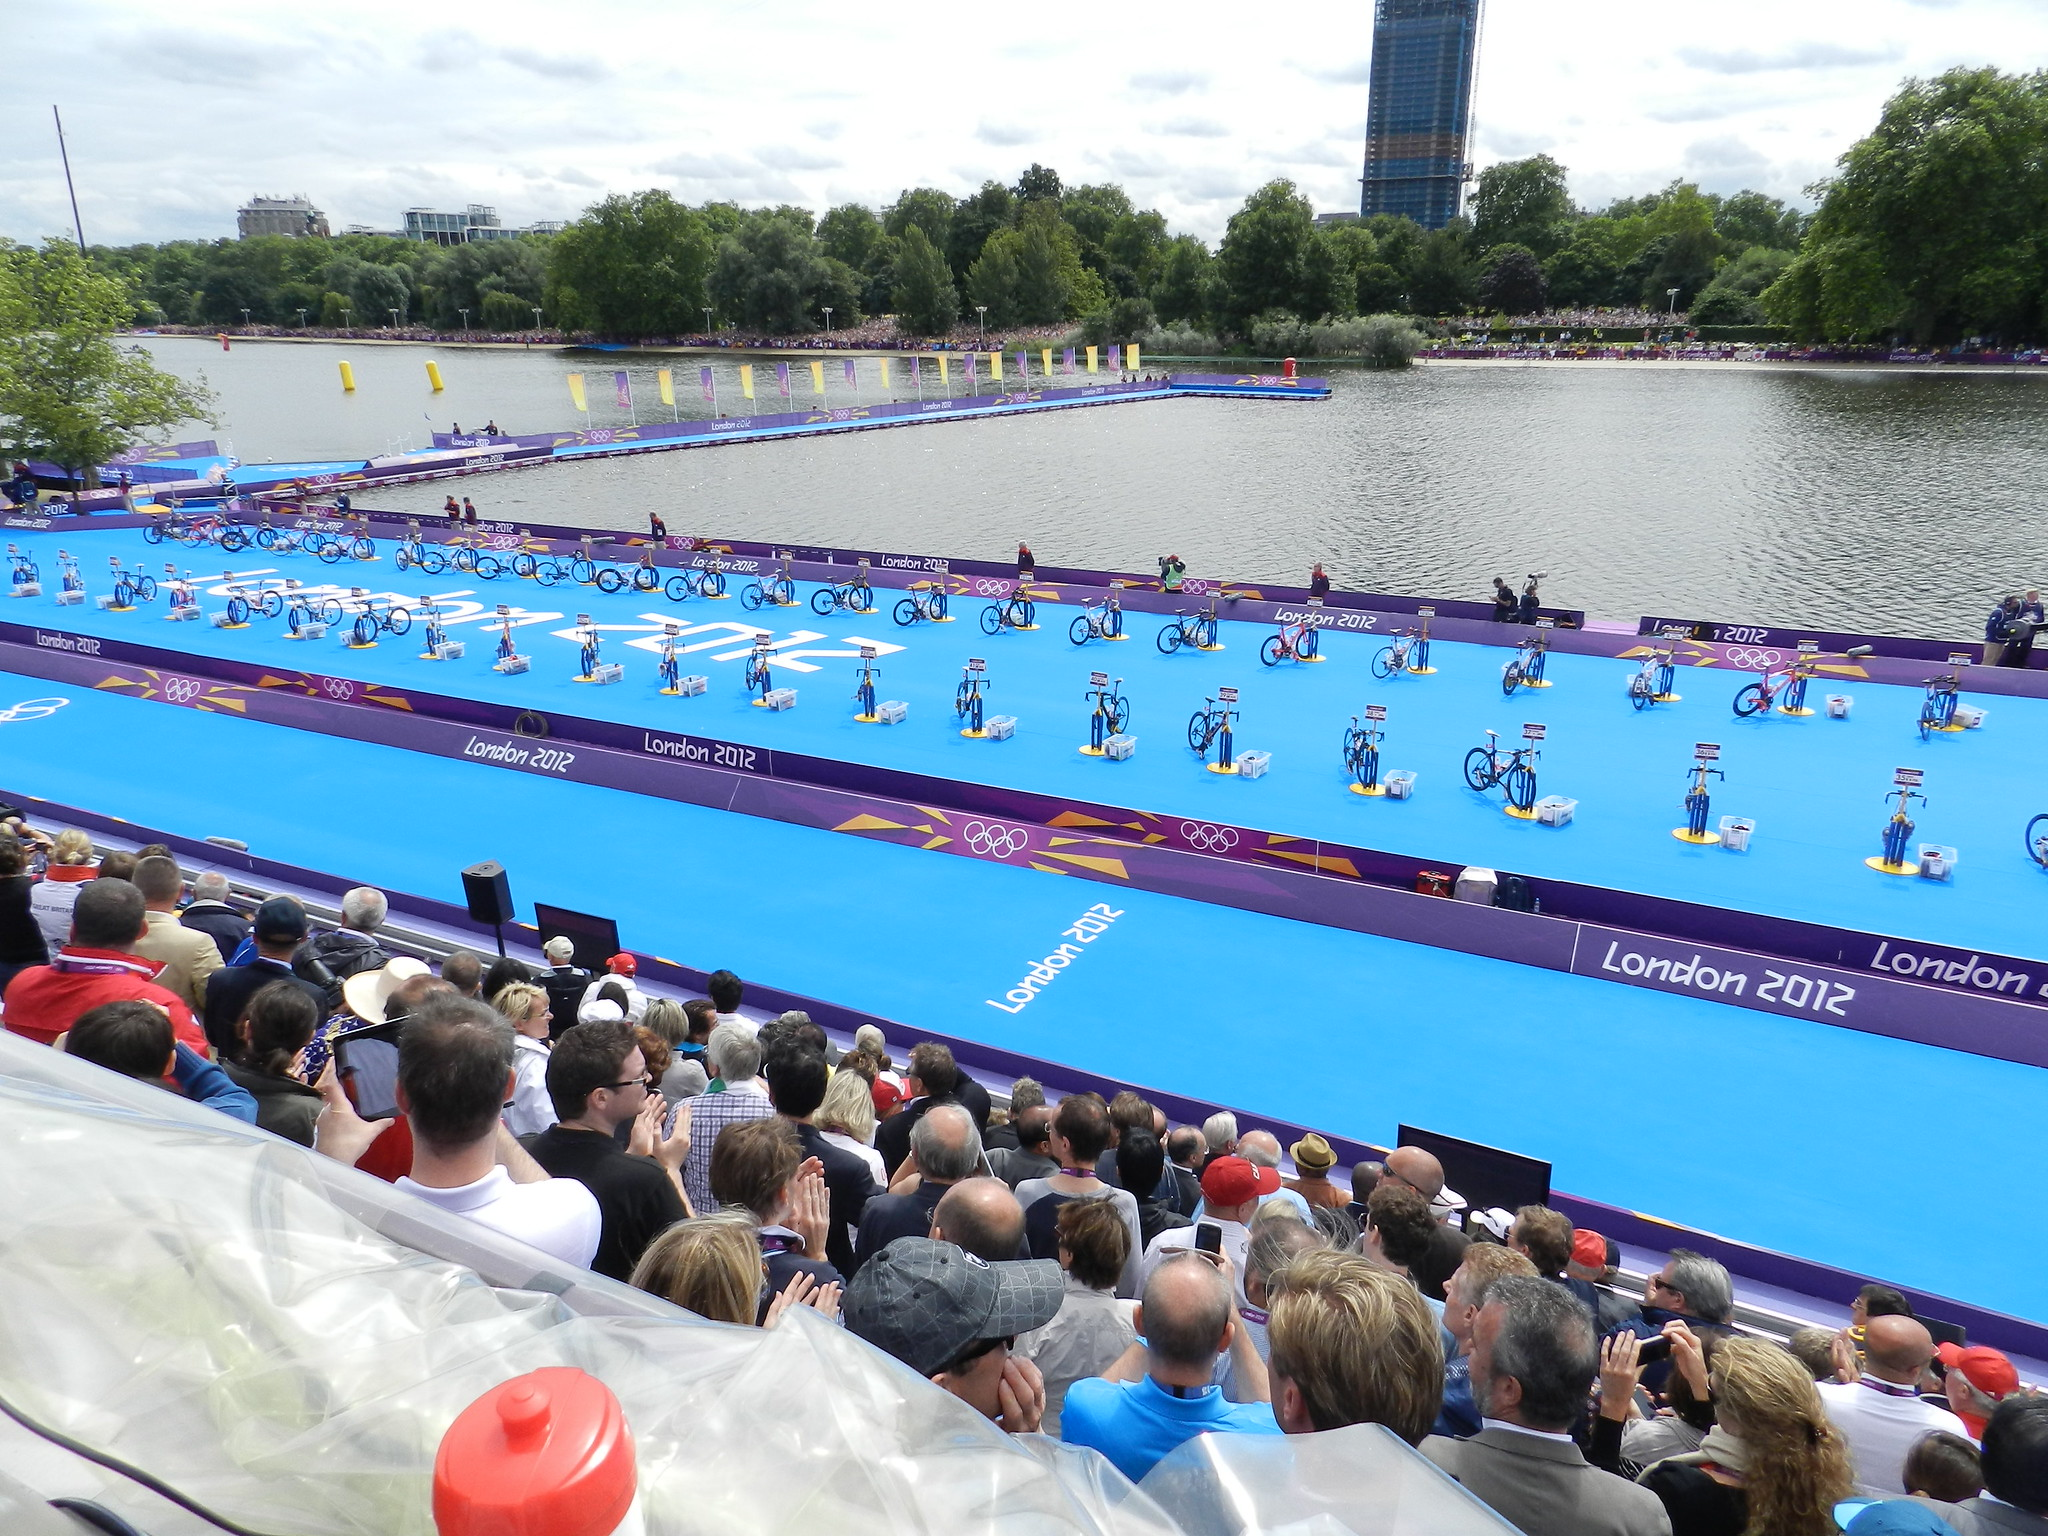 London 2012 Olympic Games Triathlon